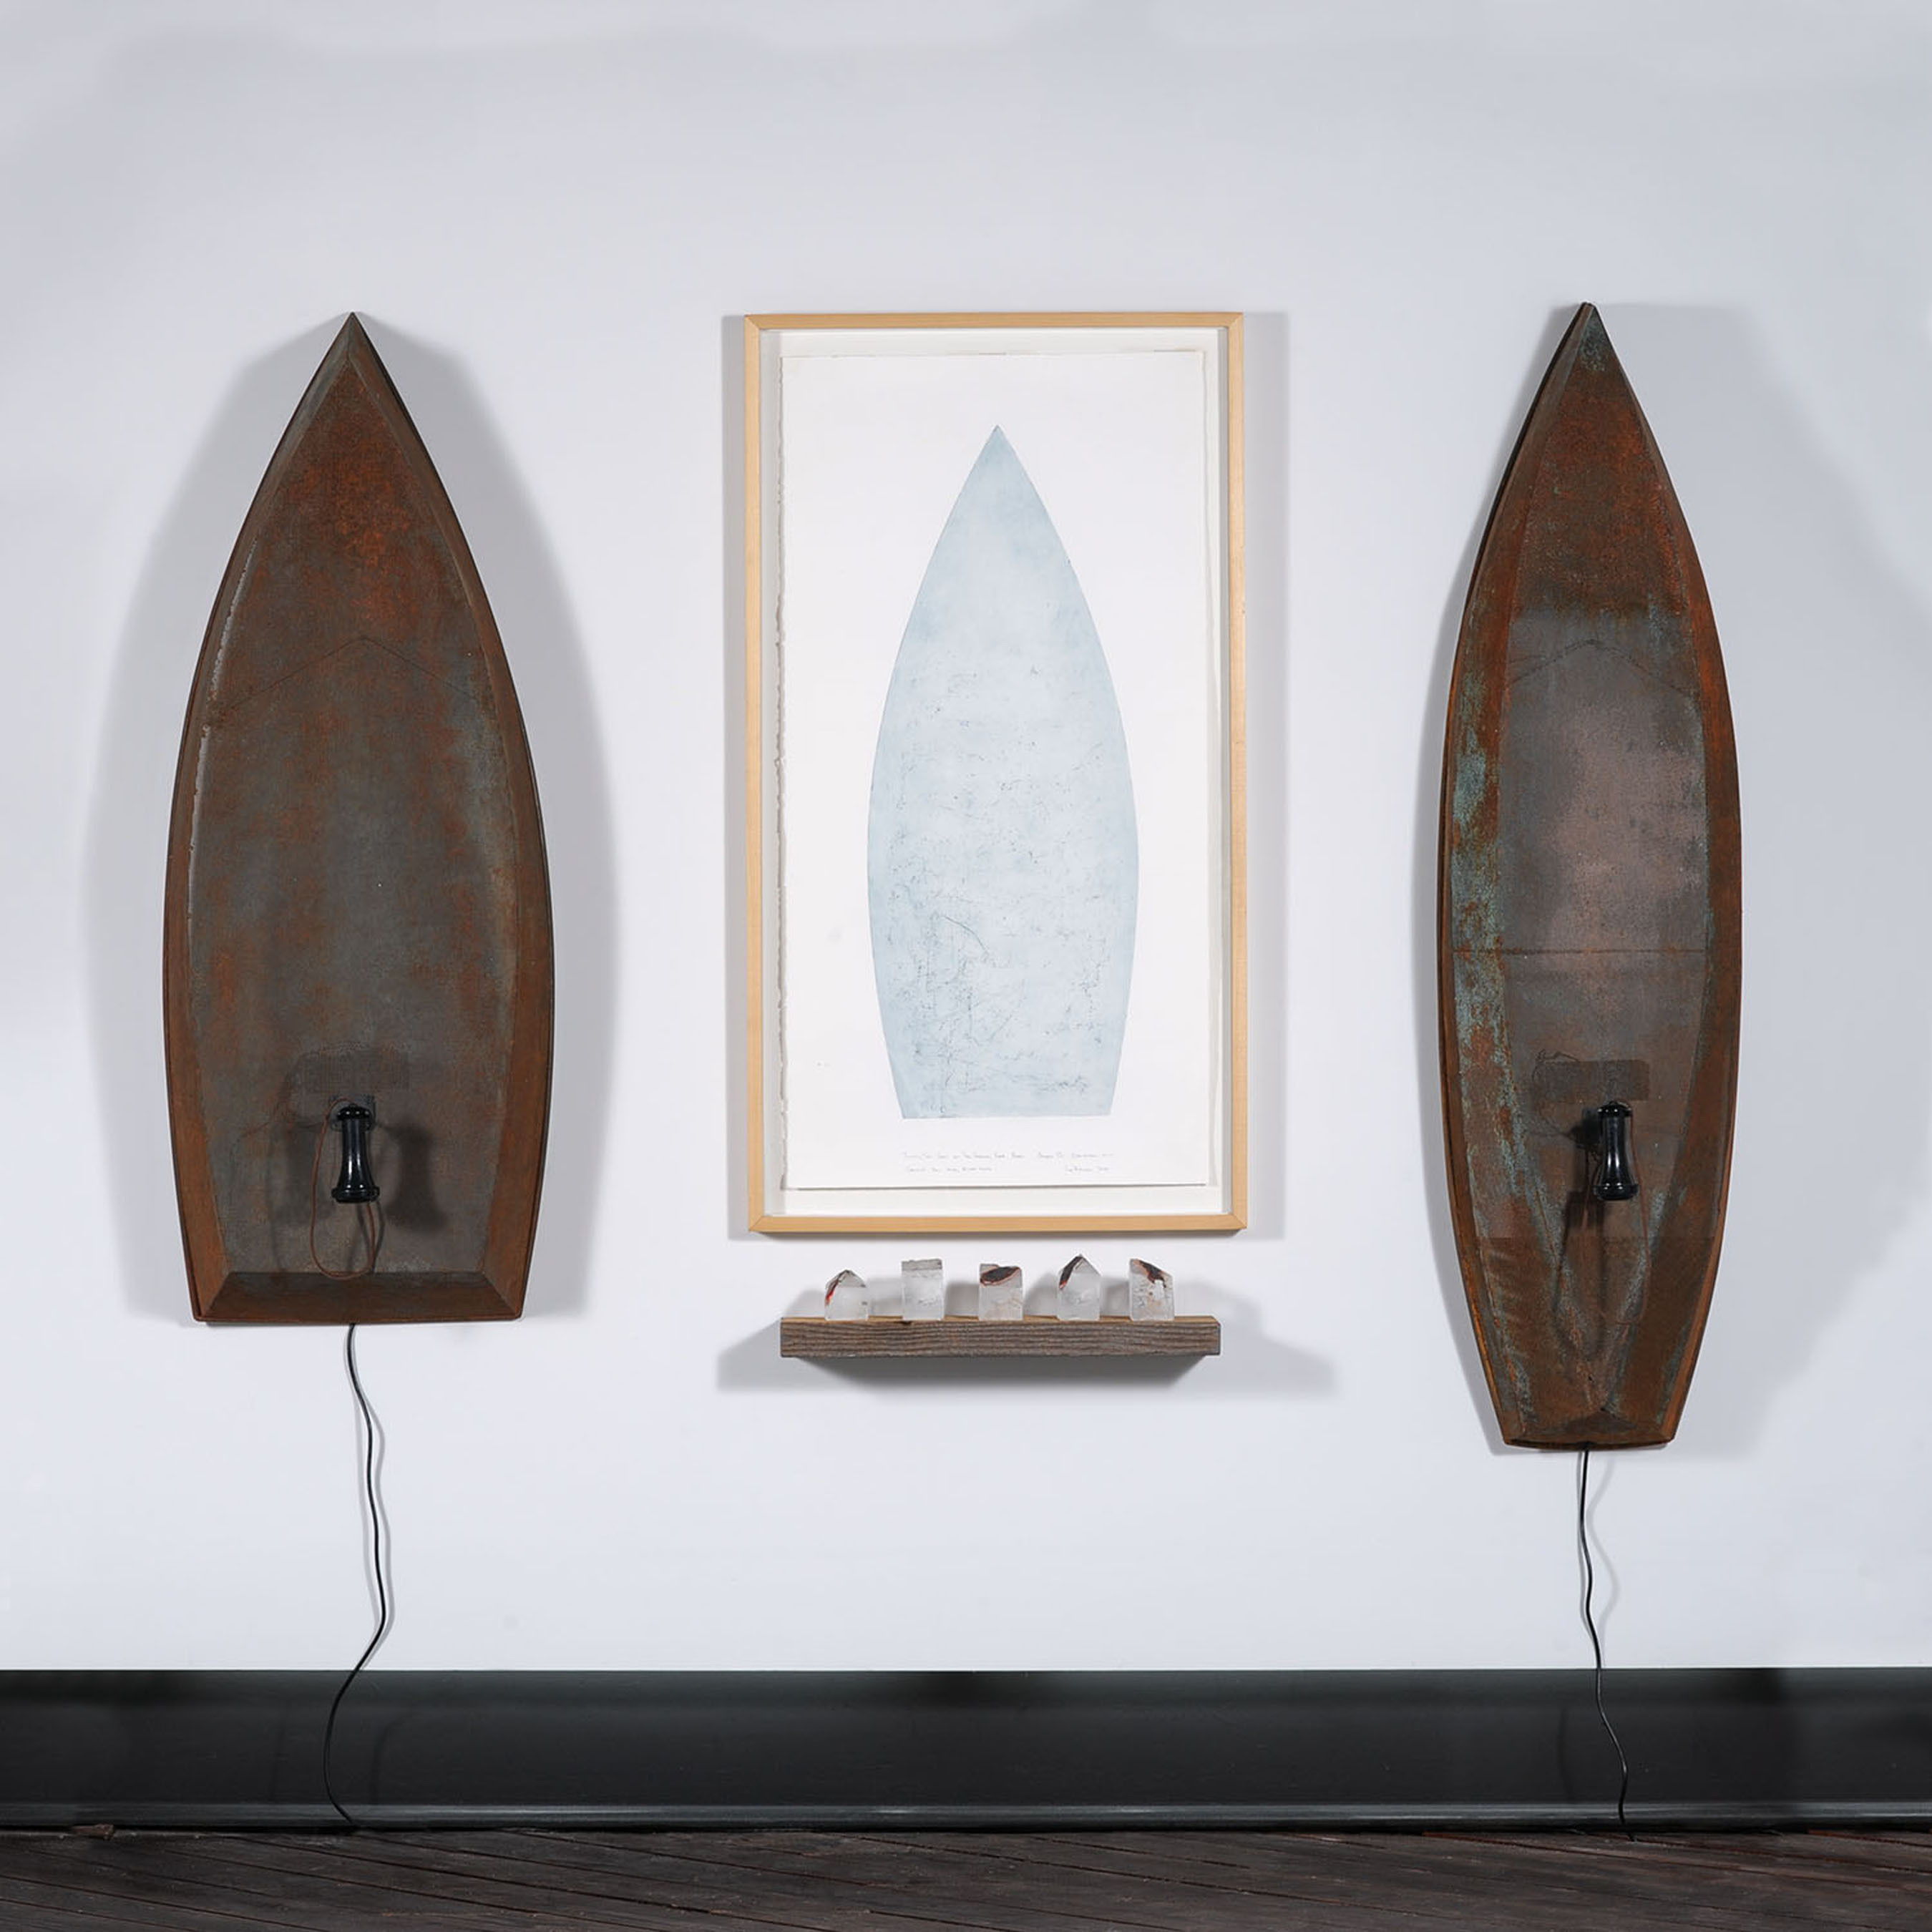 Skiff/Trow interactive boat sculptures. Viewer hears roaring river. Print made by river rocks on copper plate. Cast glass houses of copper and wood all by Lawrence LaBianca, photo by Tom Grotta.  (PRNewsFoto/browngrotta arts, Tom Grotta)